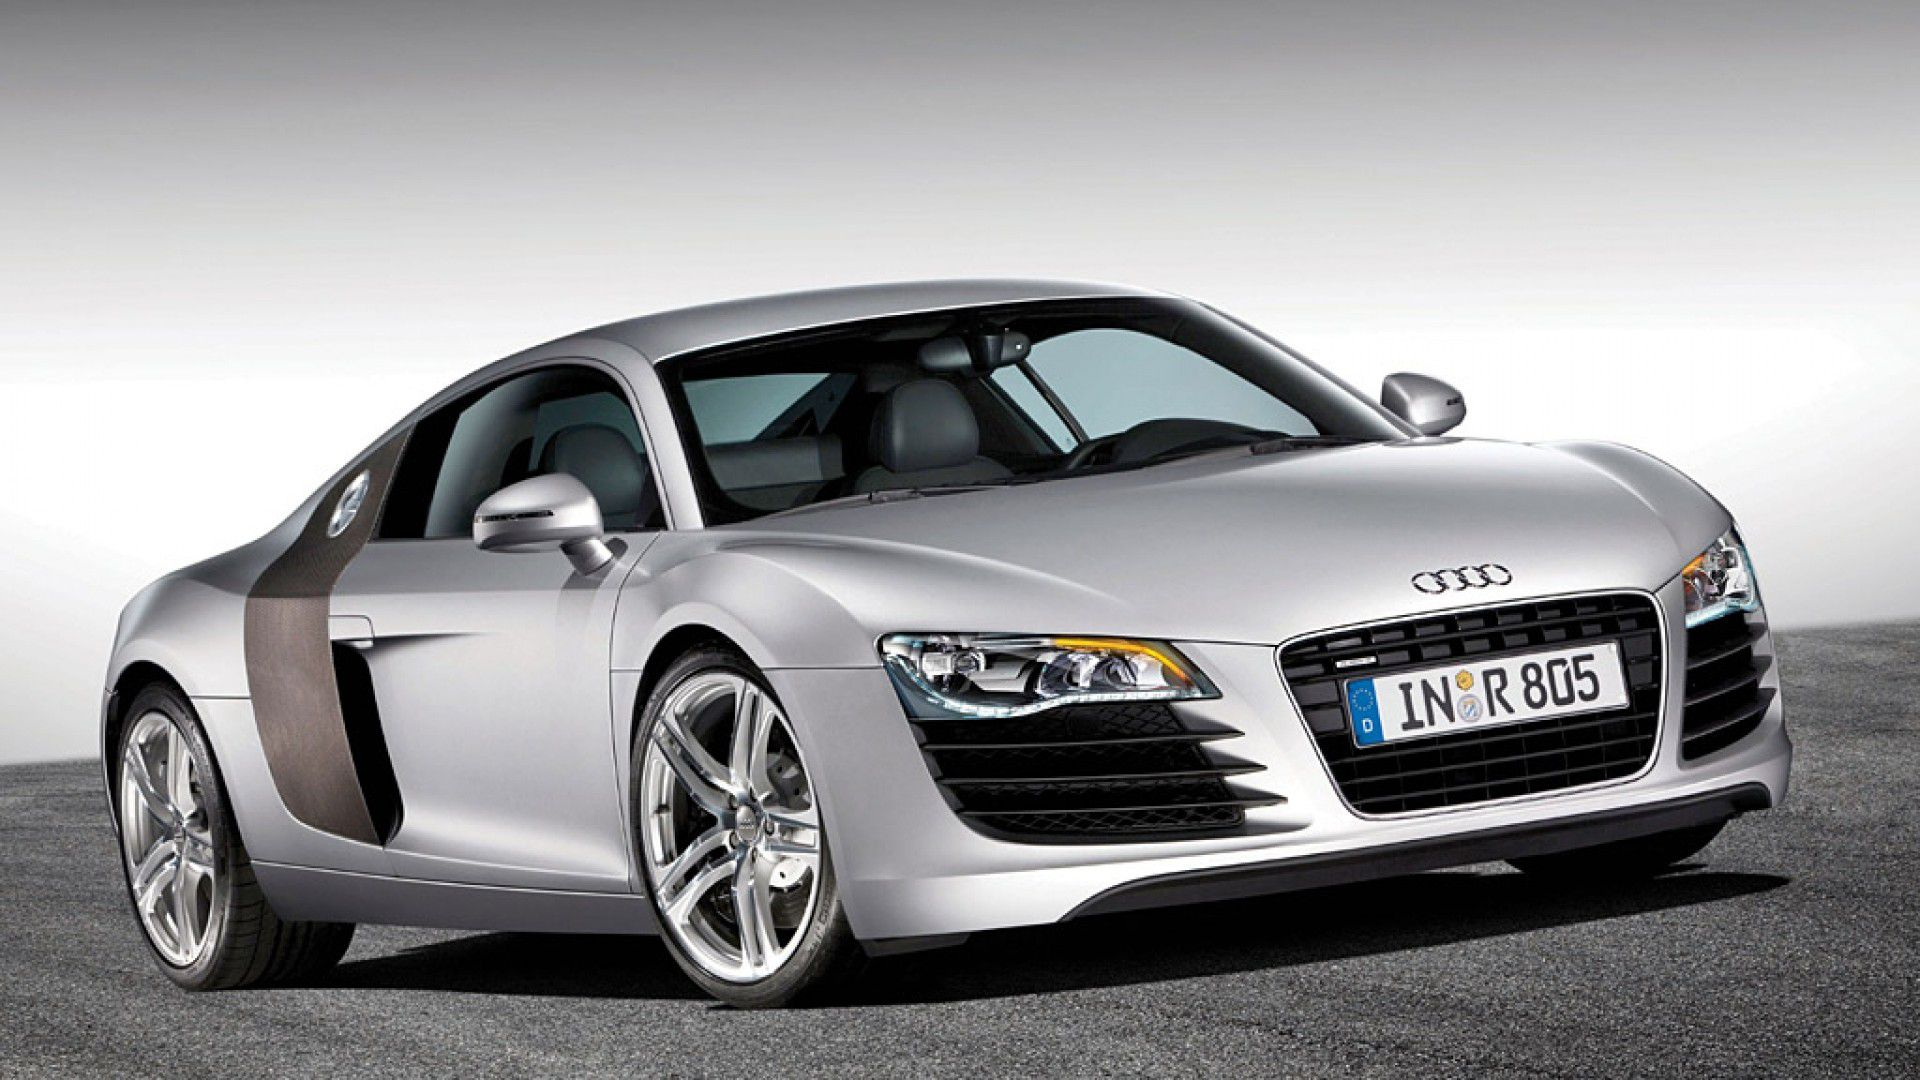 Audi R8 (2007 to Present)